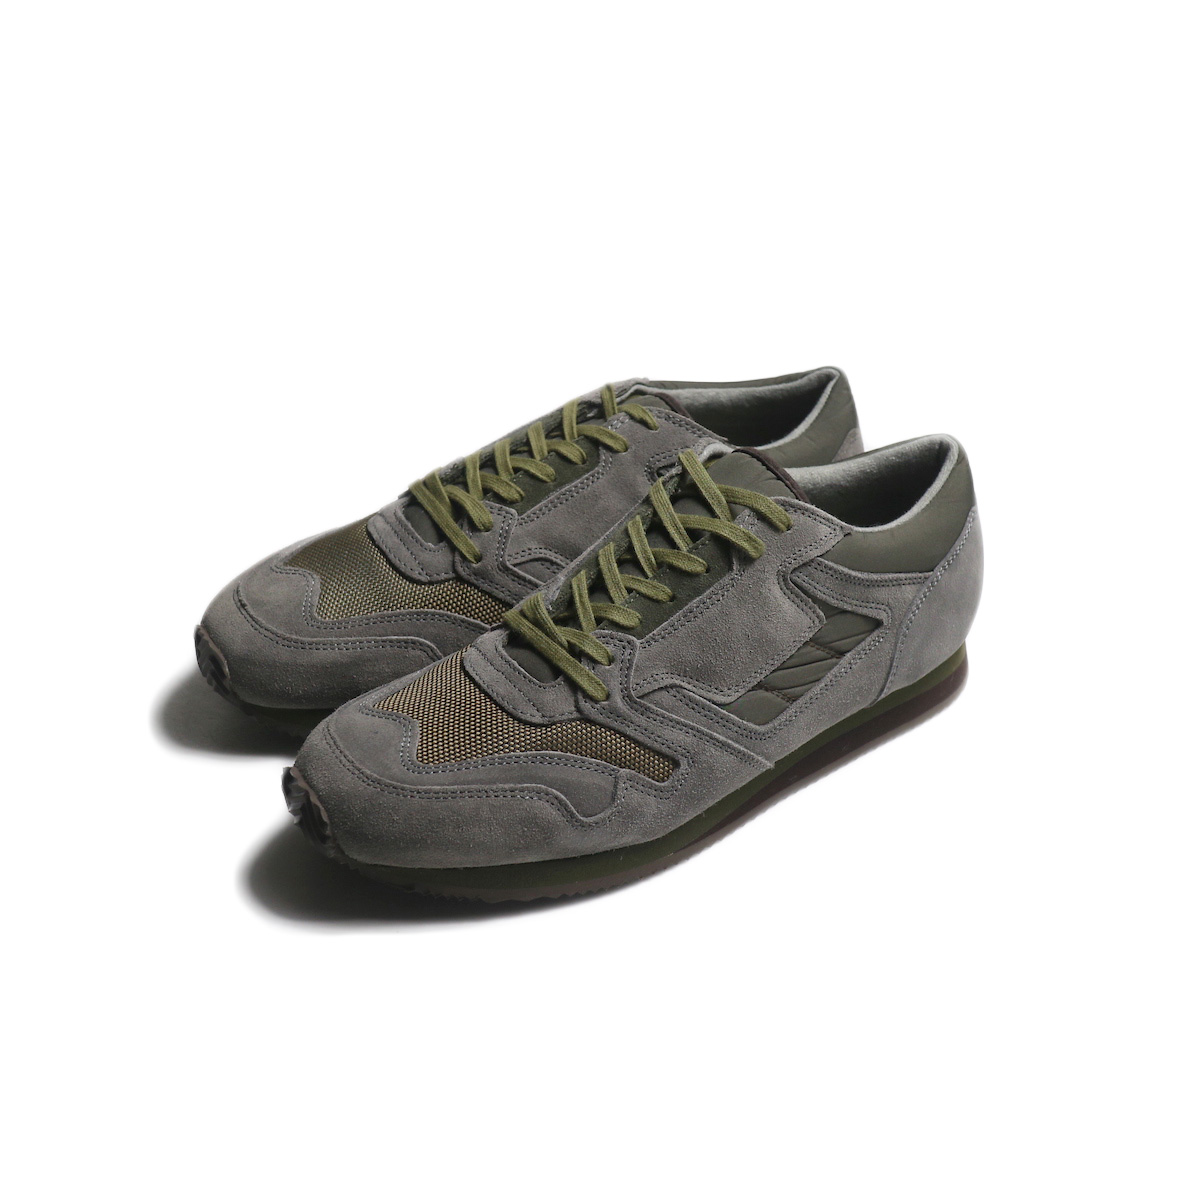 REPRODUCTION OF FOUND / BRITISH MILITARY TRAINER (Gray/Olive)